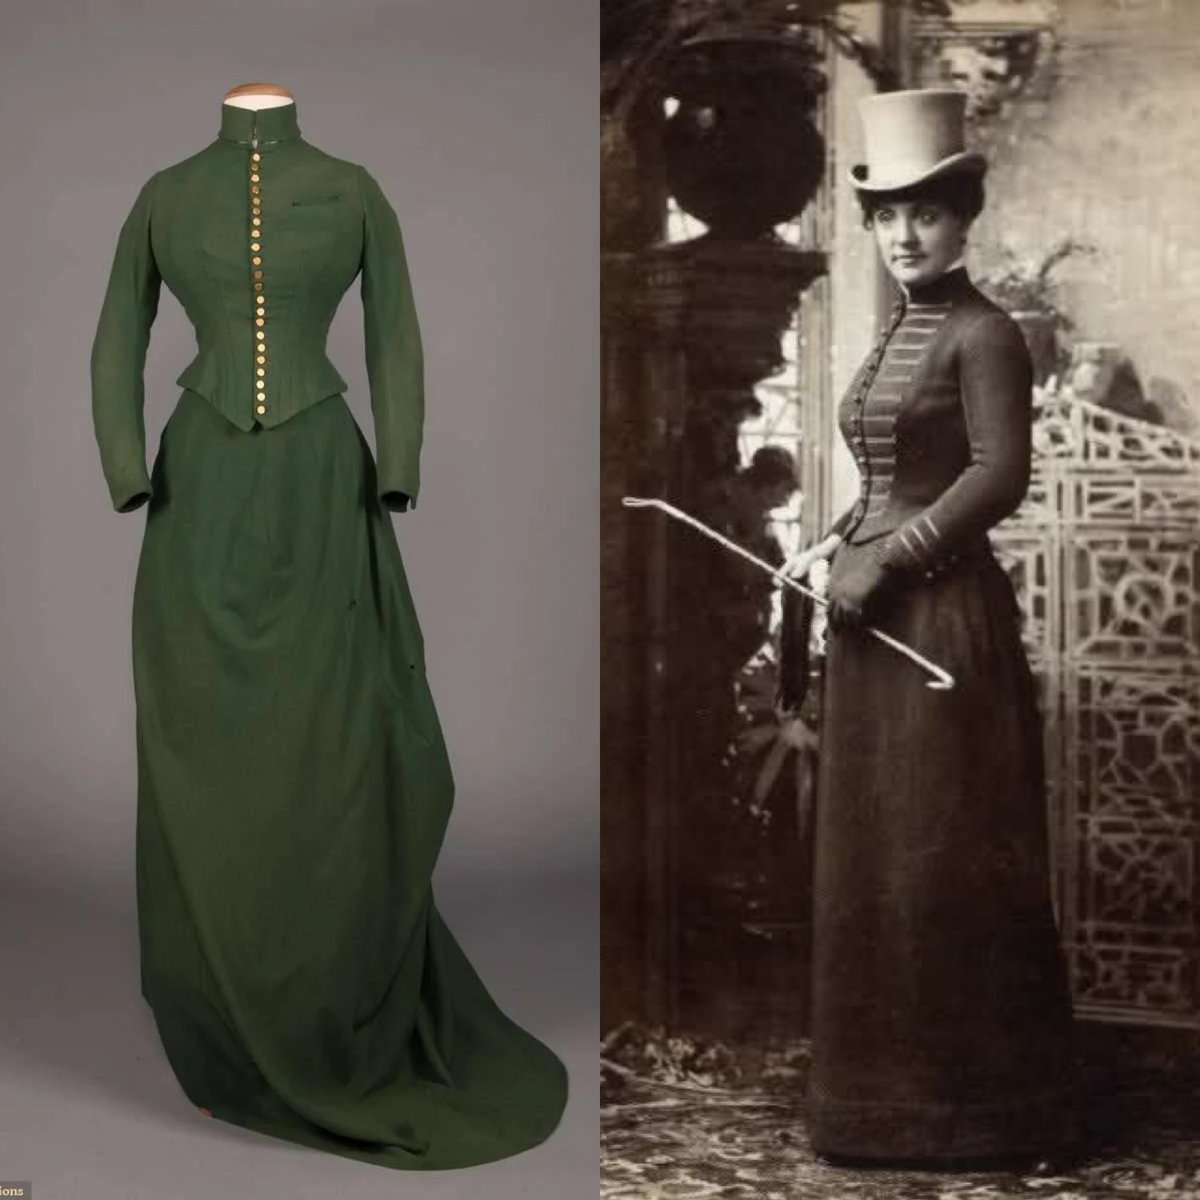 #Ridinghabits owe much to great engineering, a garment that was tailored to closely fit the body but also accommodate the contemporary imperative to ride side saddle. I don't know who the subject of this #1880s photo is but I hope she is in the same green as this @AugustaAuction